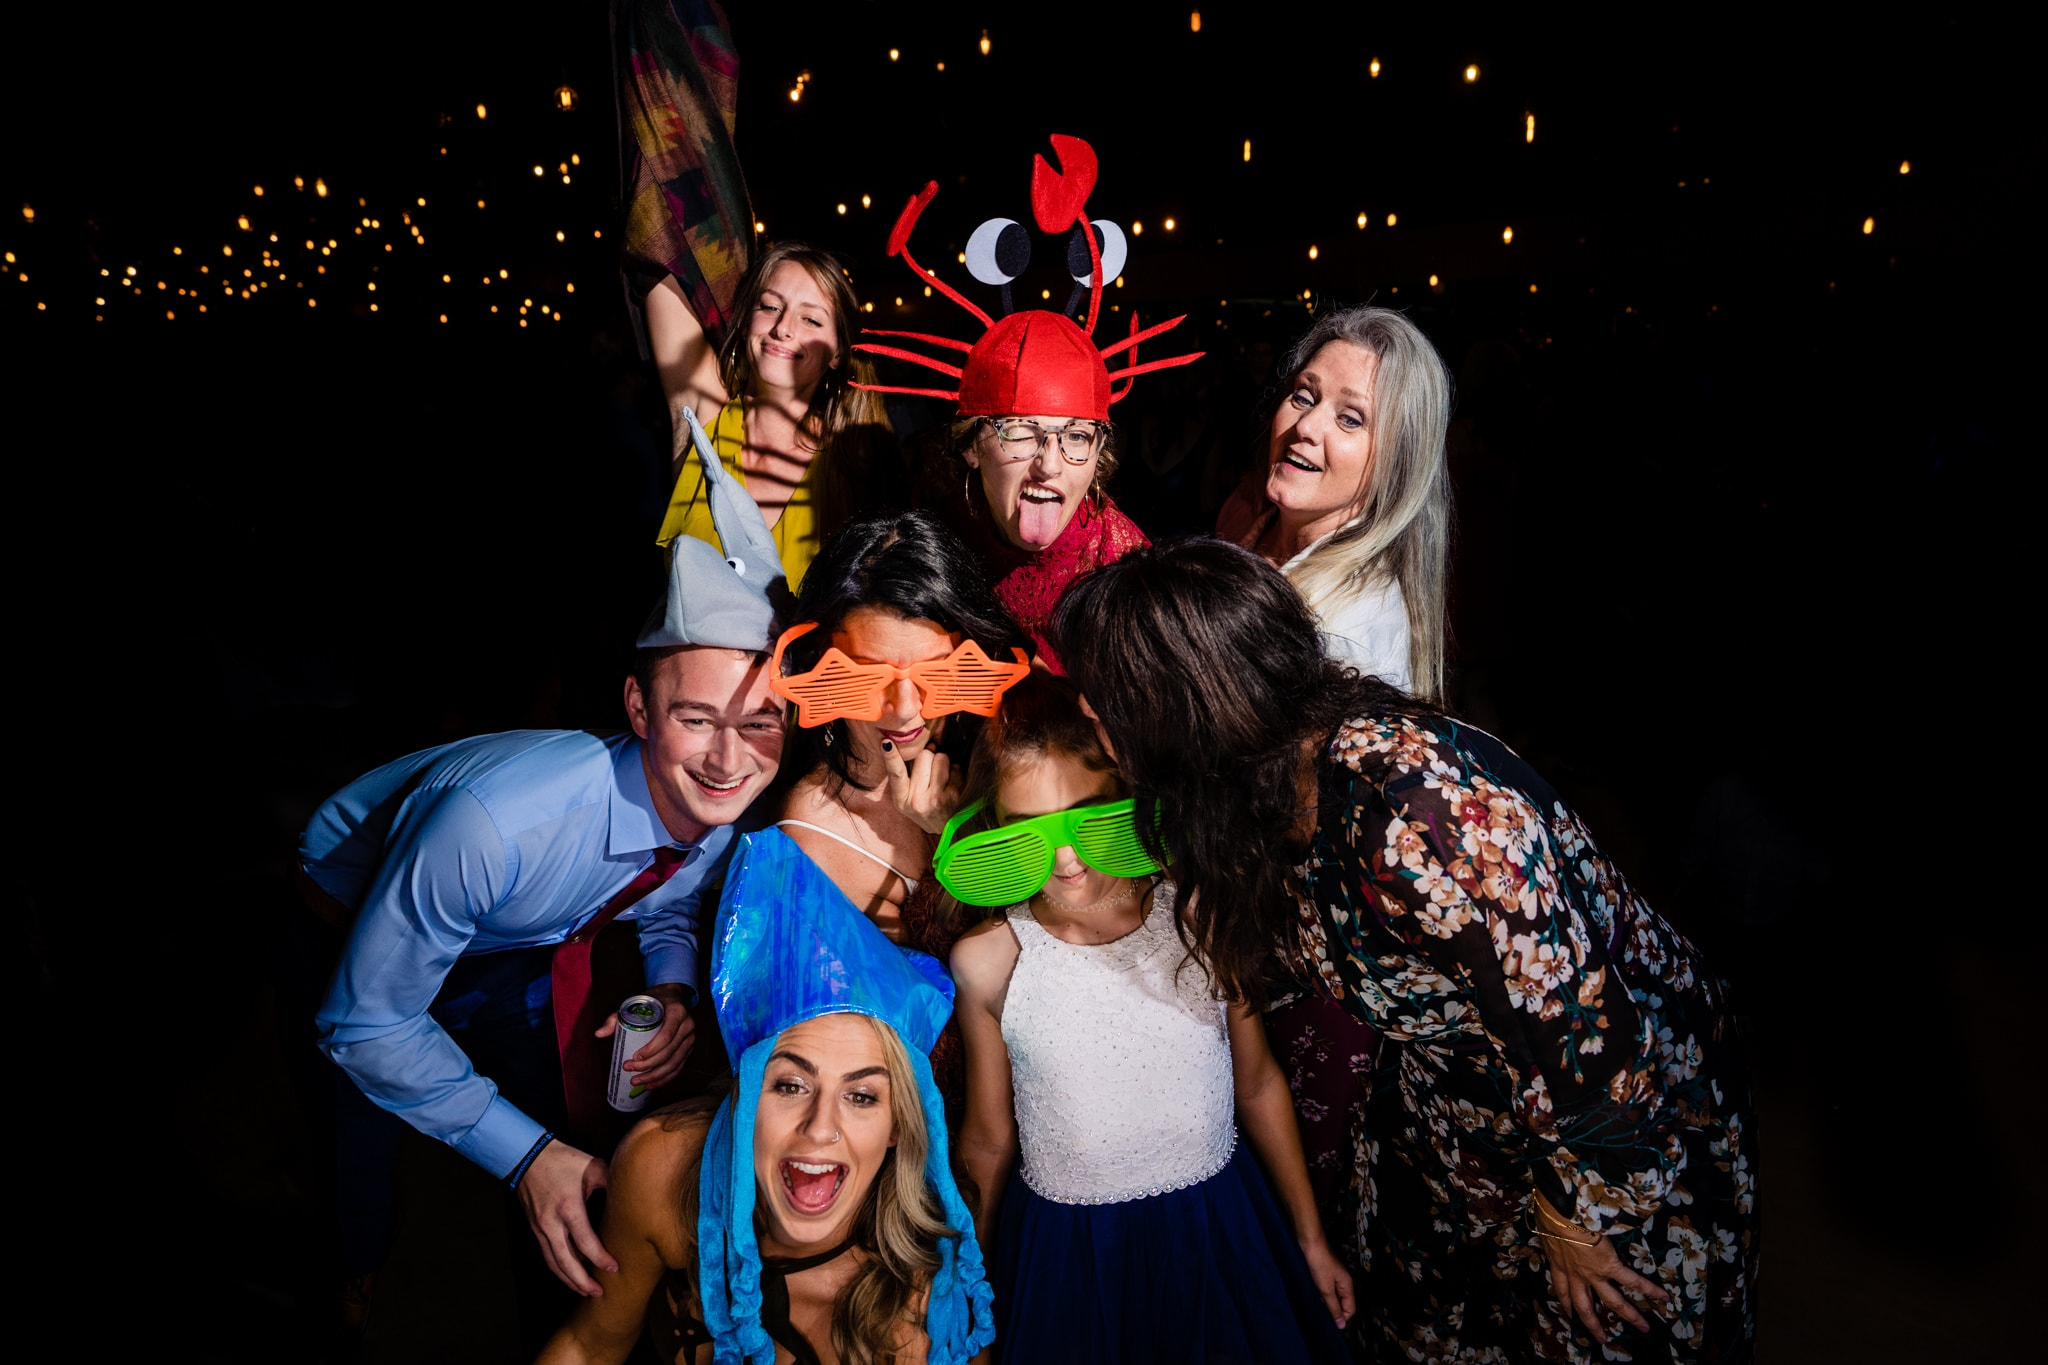 Group of wedding guests post for a silly photo